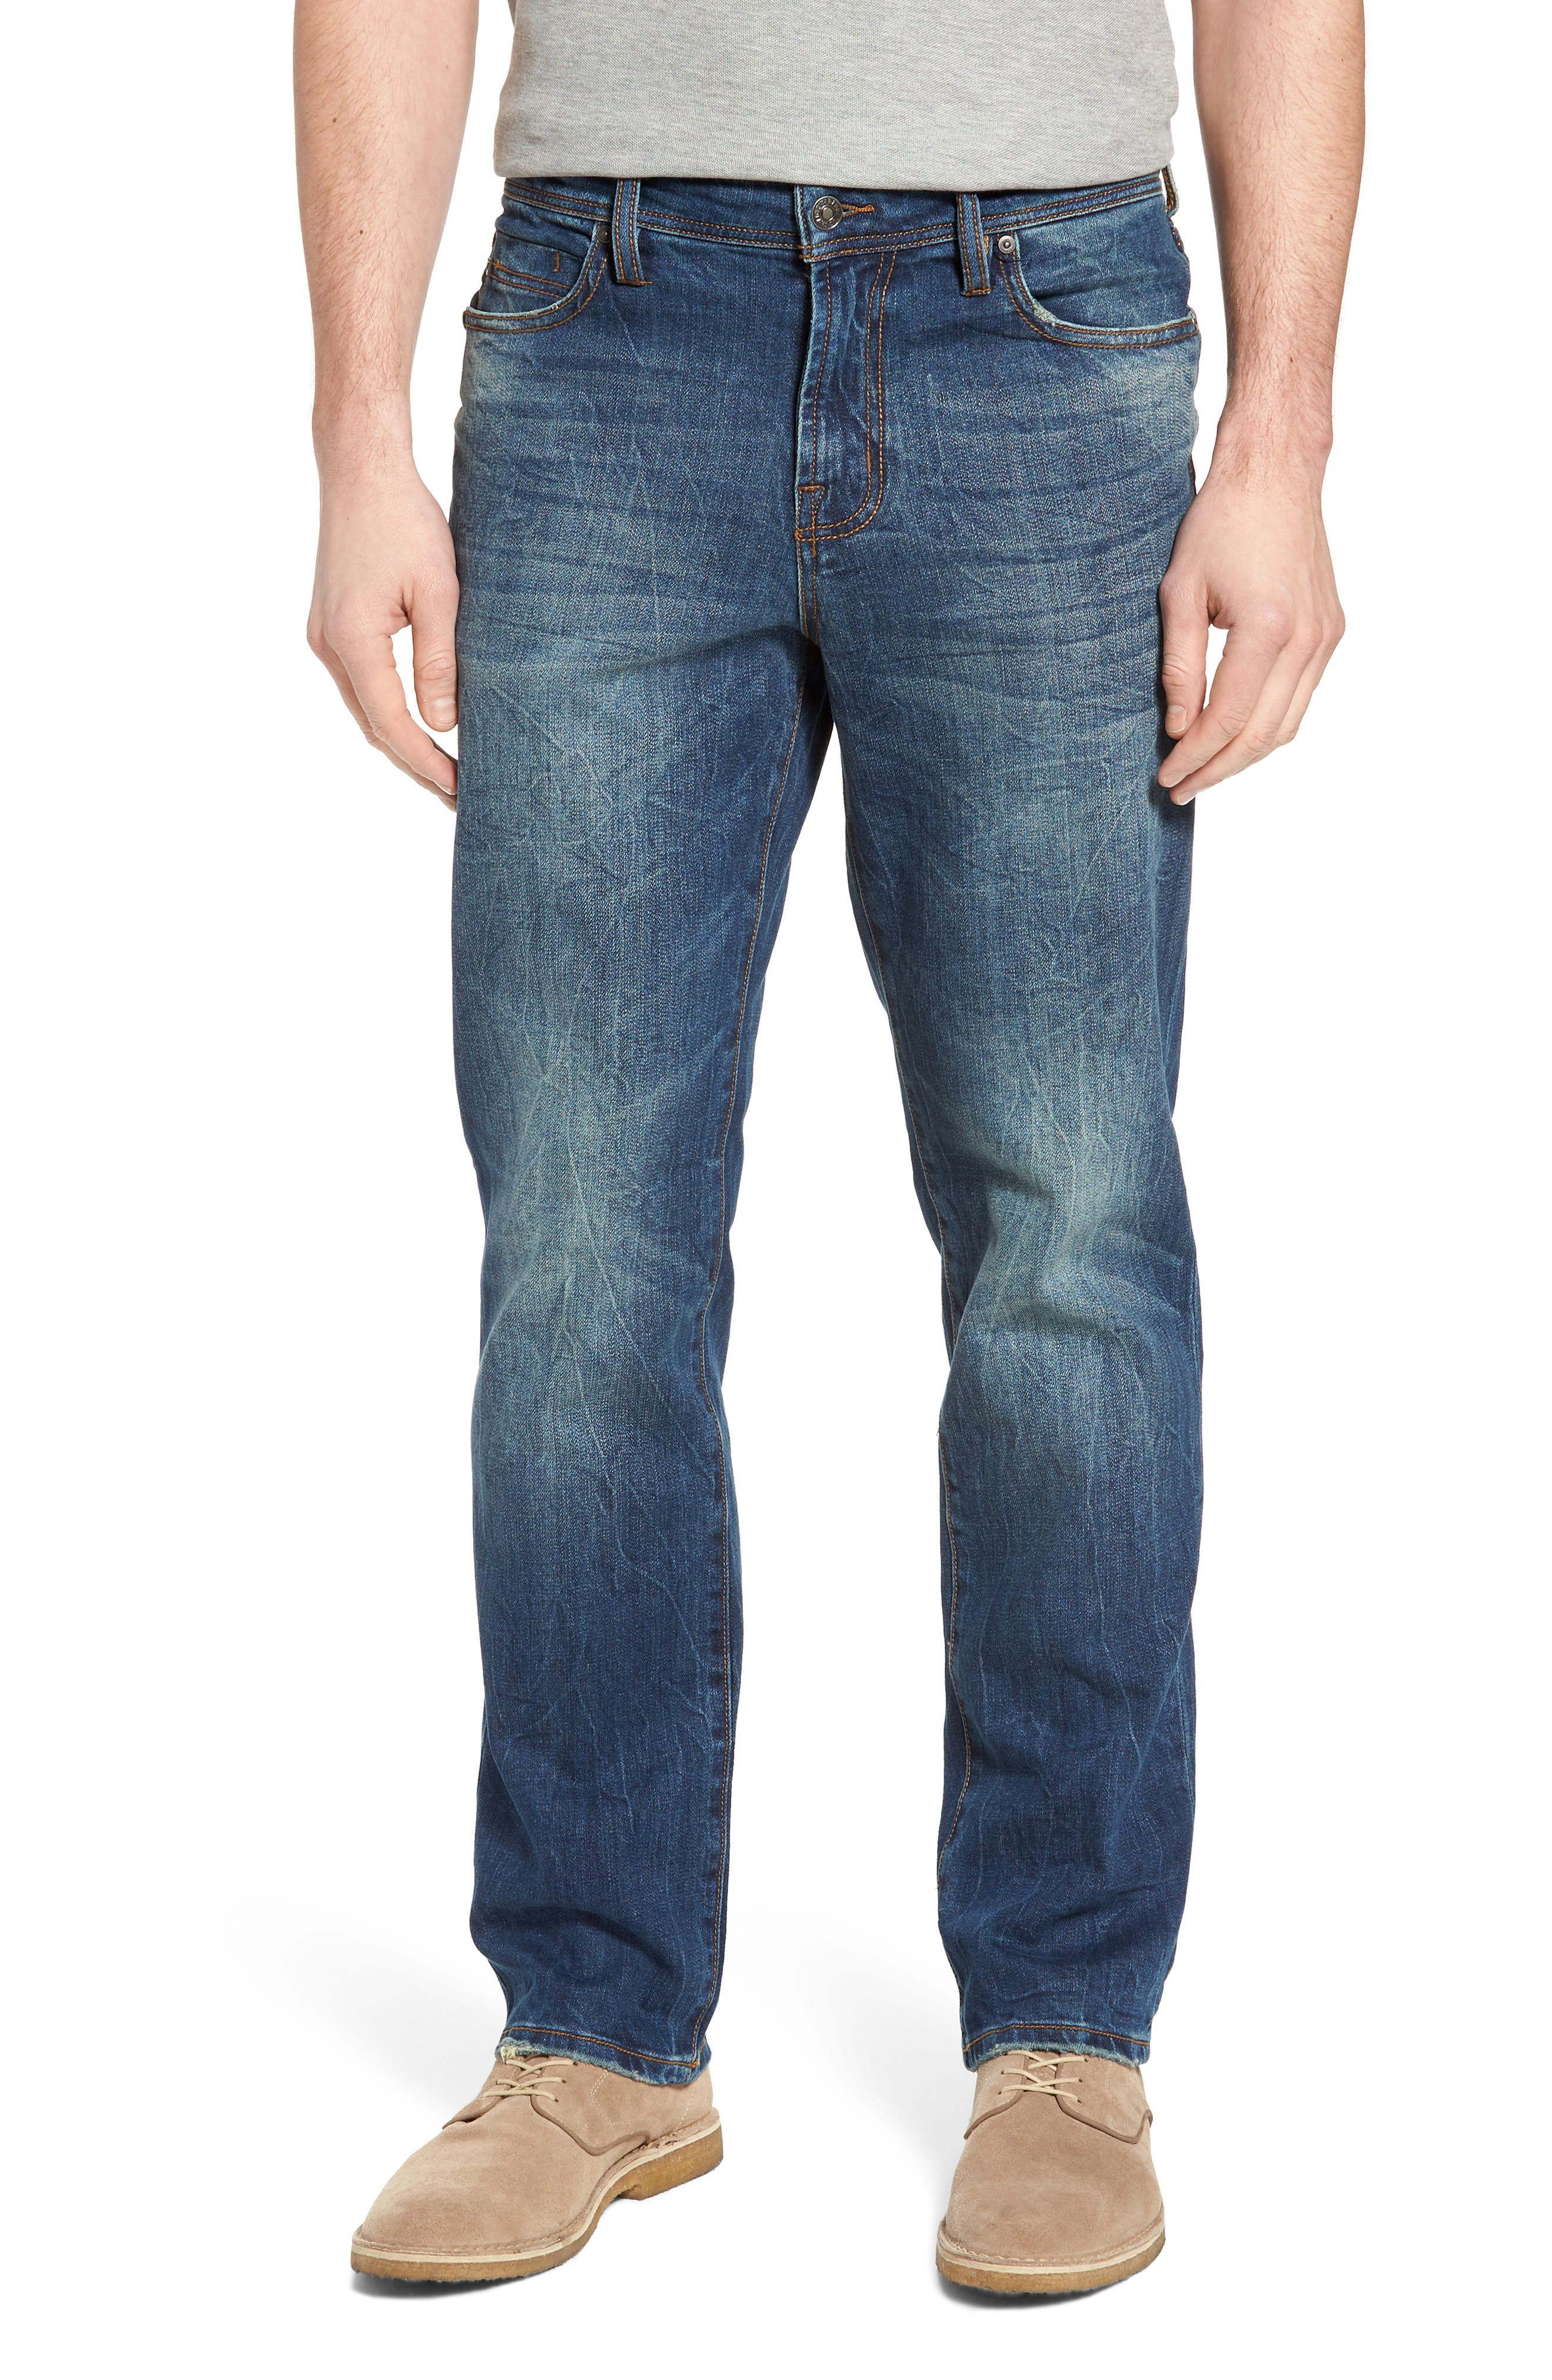 Jeans Co. Regent Relaxed Fit Jeans,                         Main,                         color, Odessa Vintage Medium